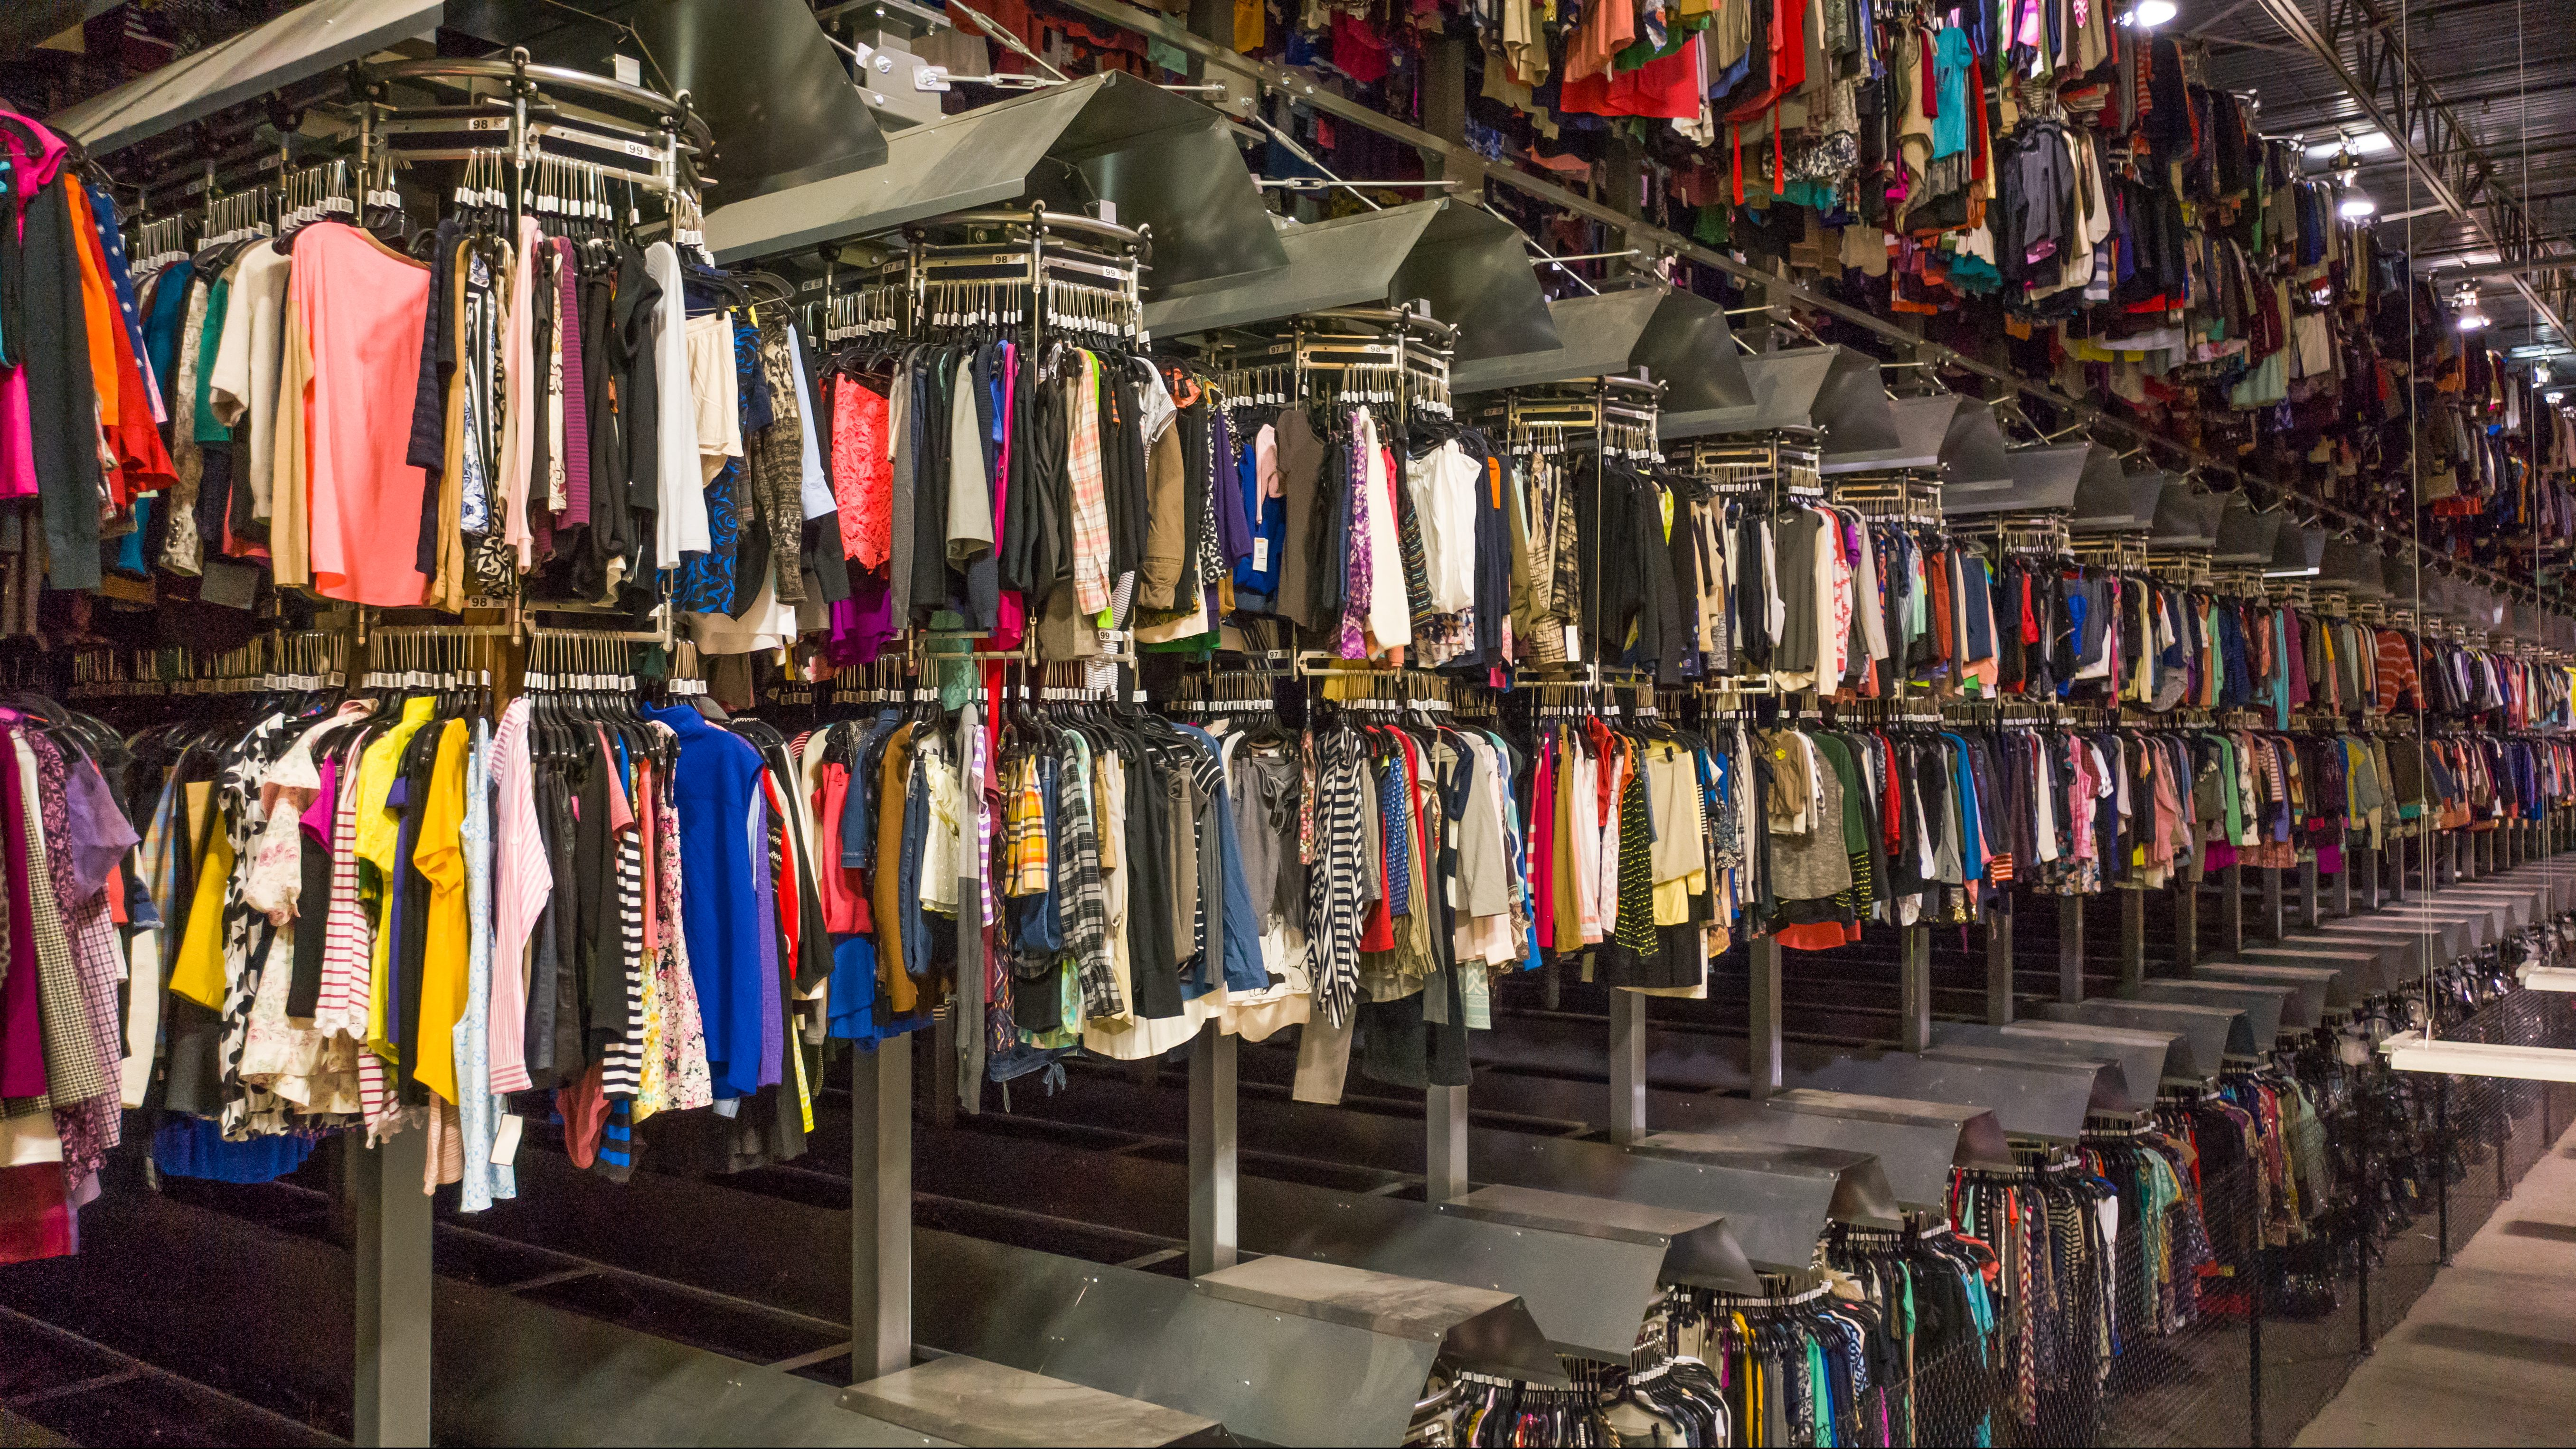 A warehouse containing racks full of used clothes